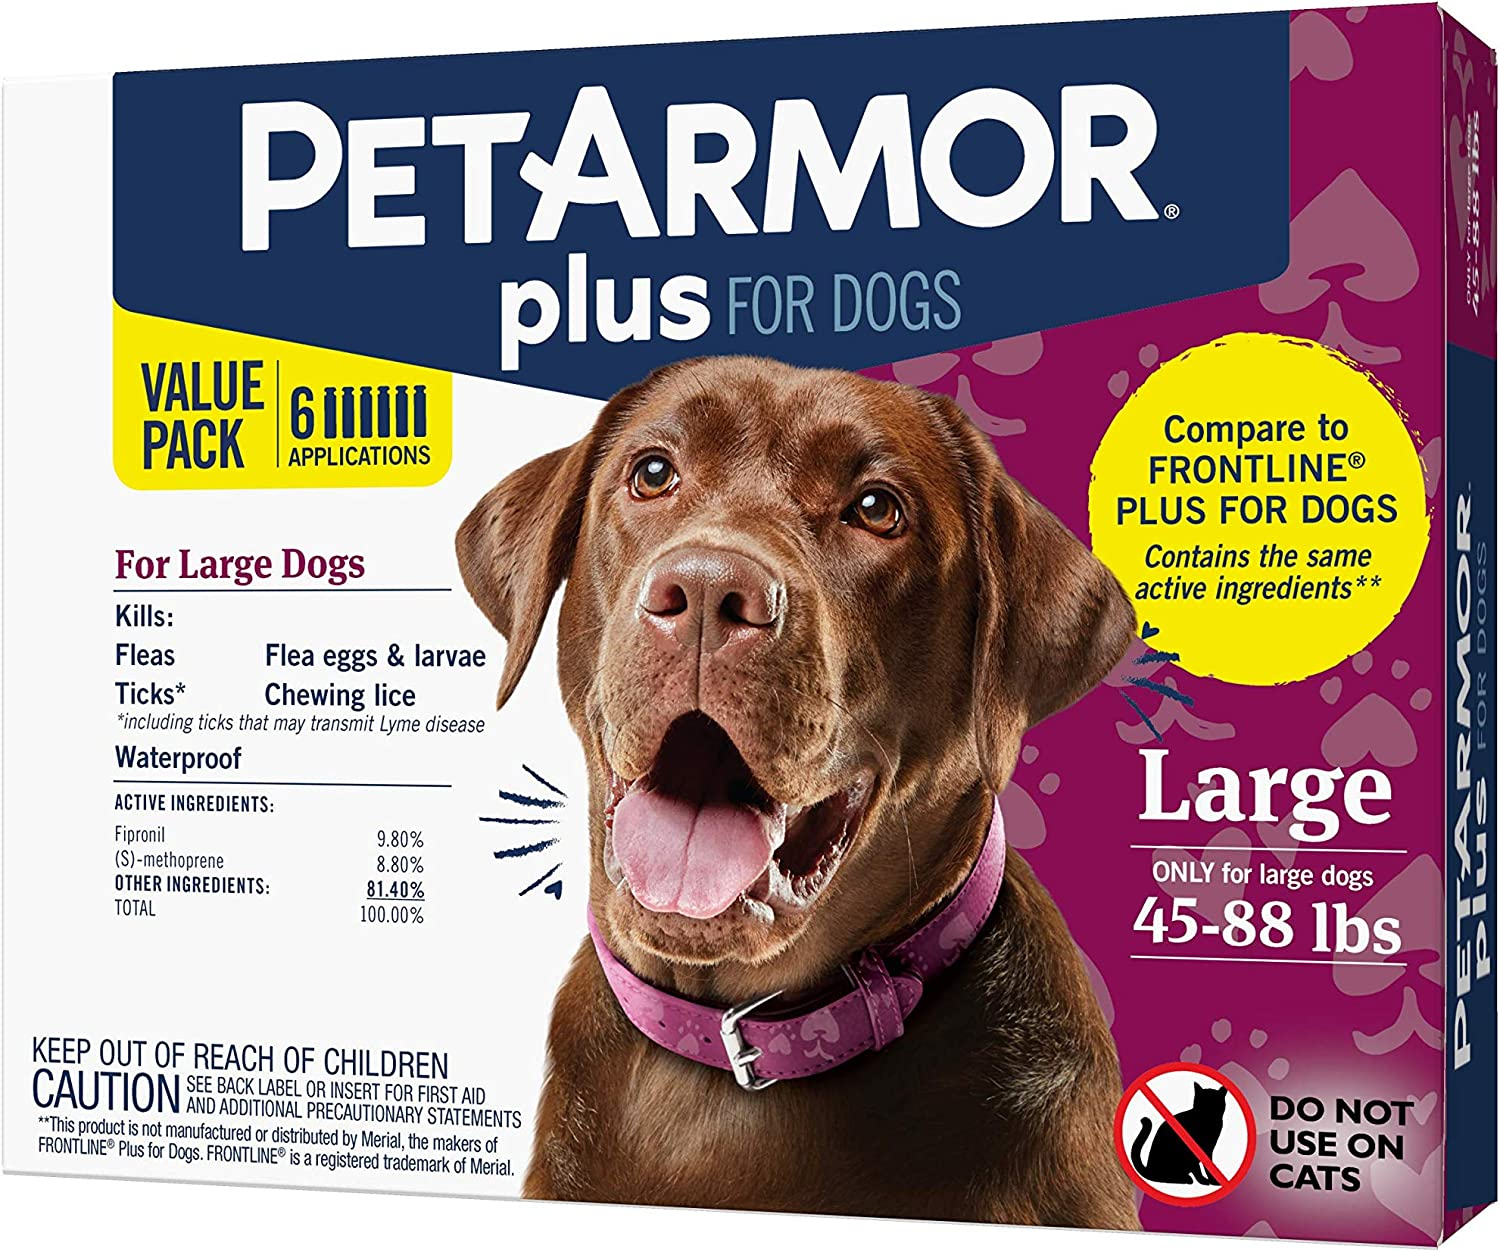 PETARMOR Plus for Dogs Flea and Tick Prevention for Dogs, Long-Lasting & Fast-Acting Topical Dog Flea Treatment, 6 Count